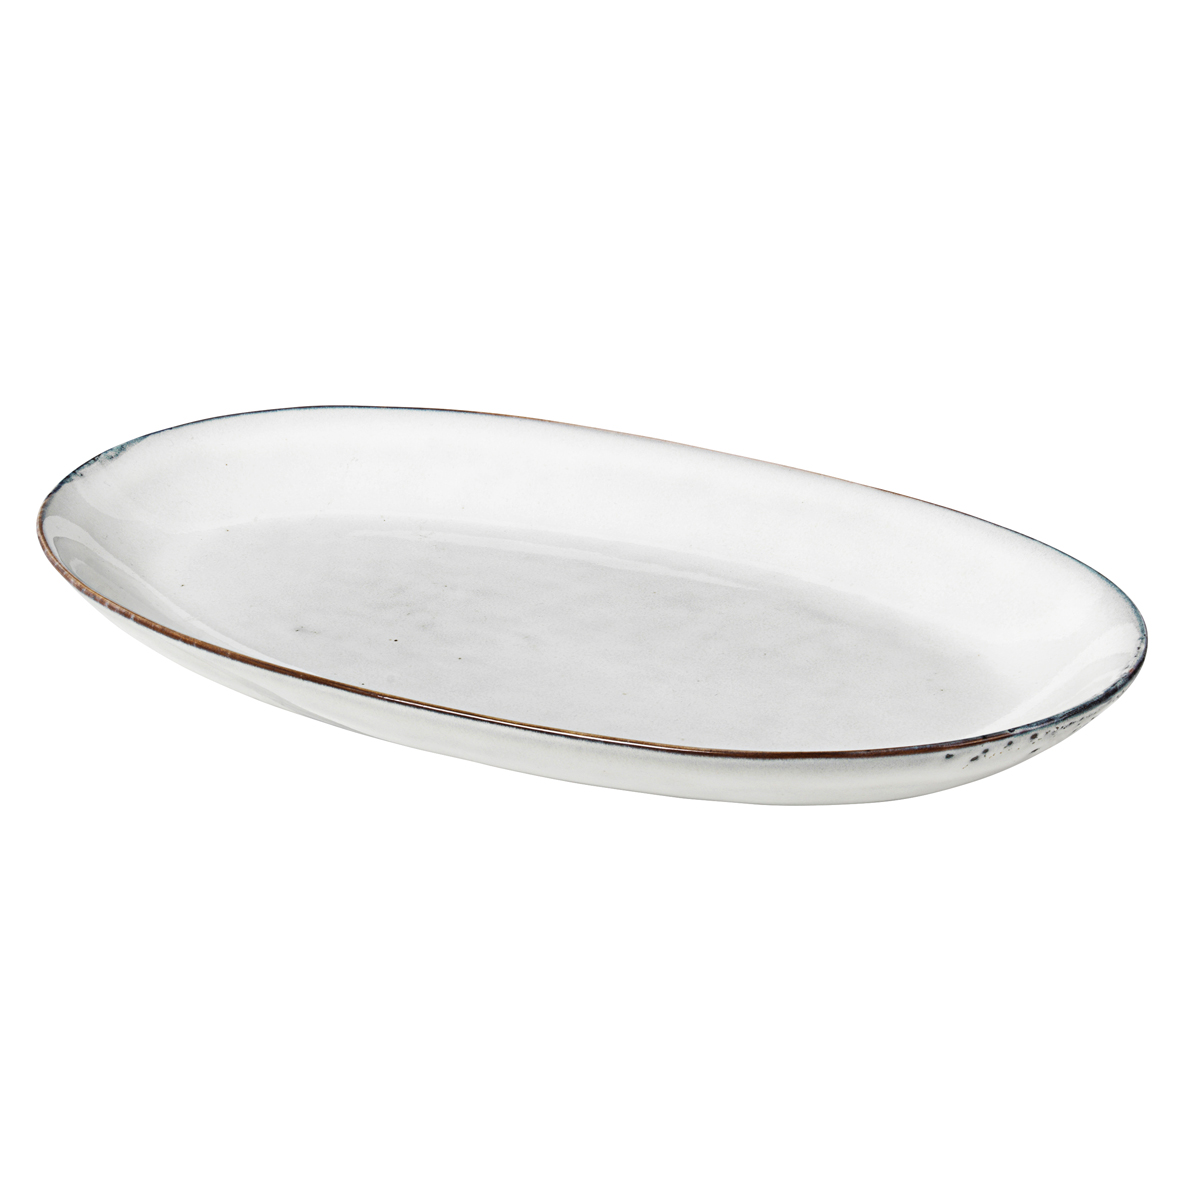 14533174-Nordic-Sand-Large-Oval-Plate